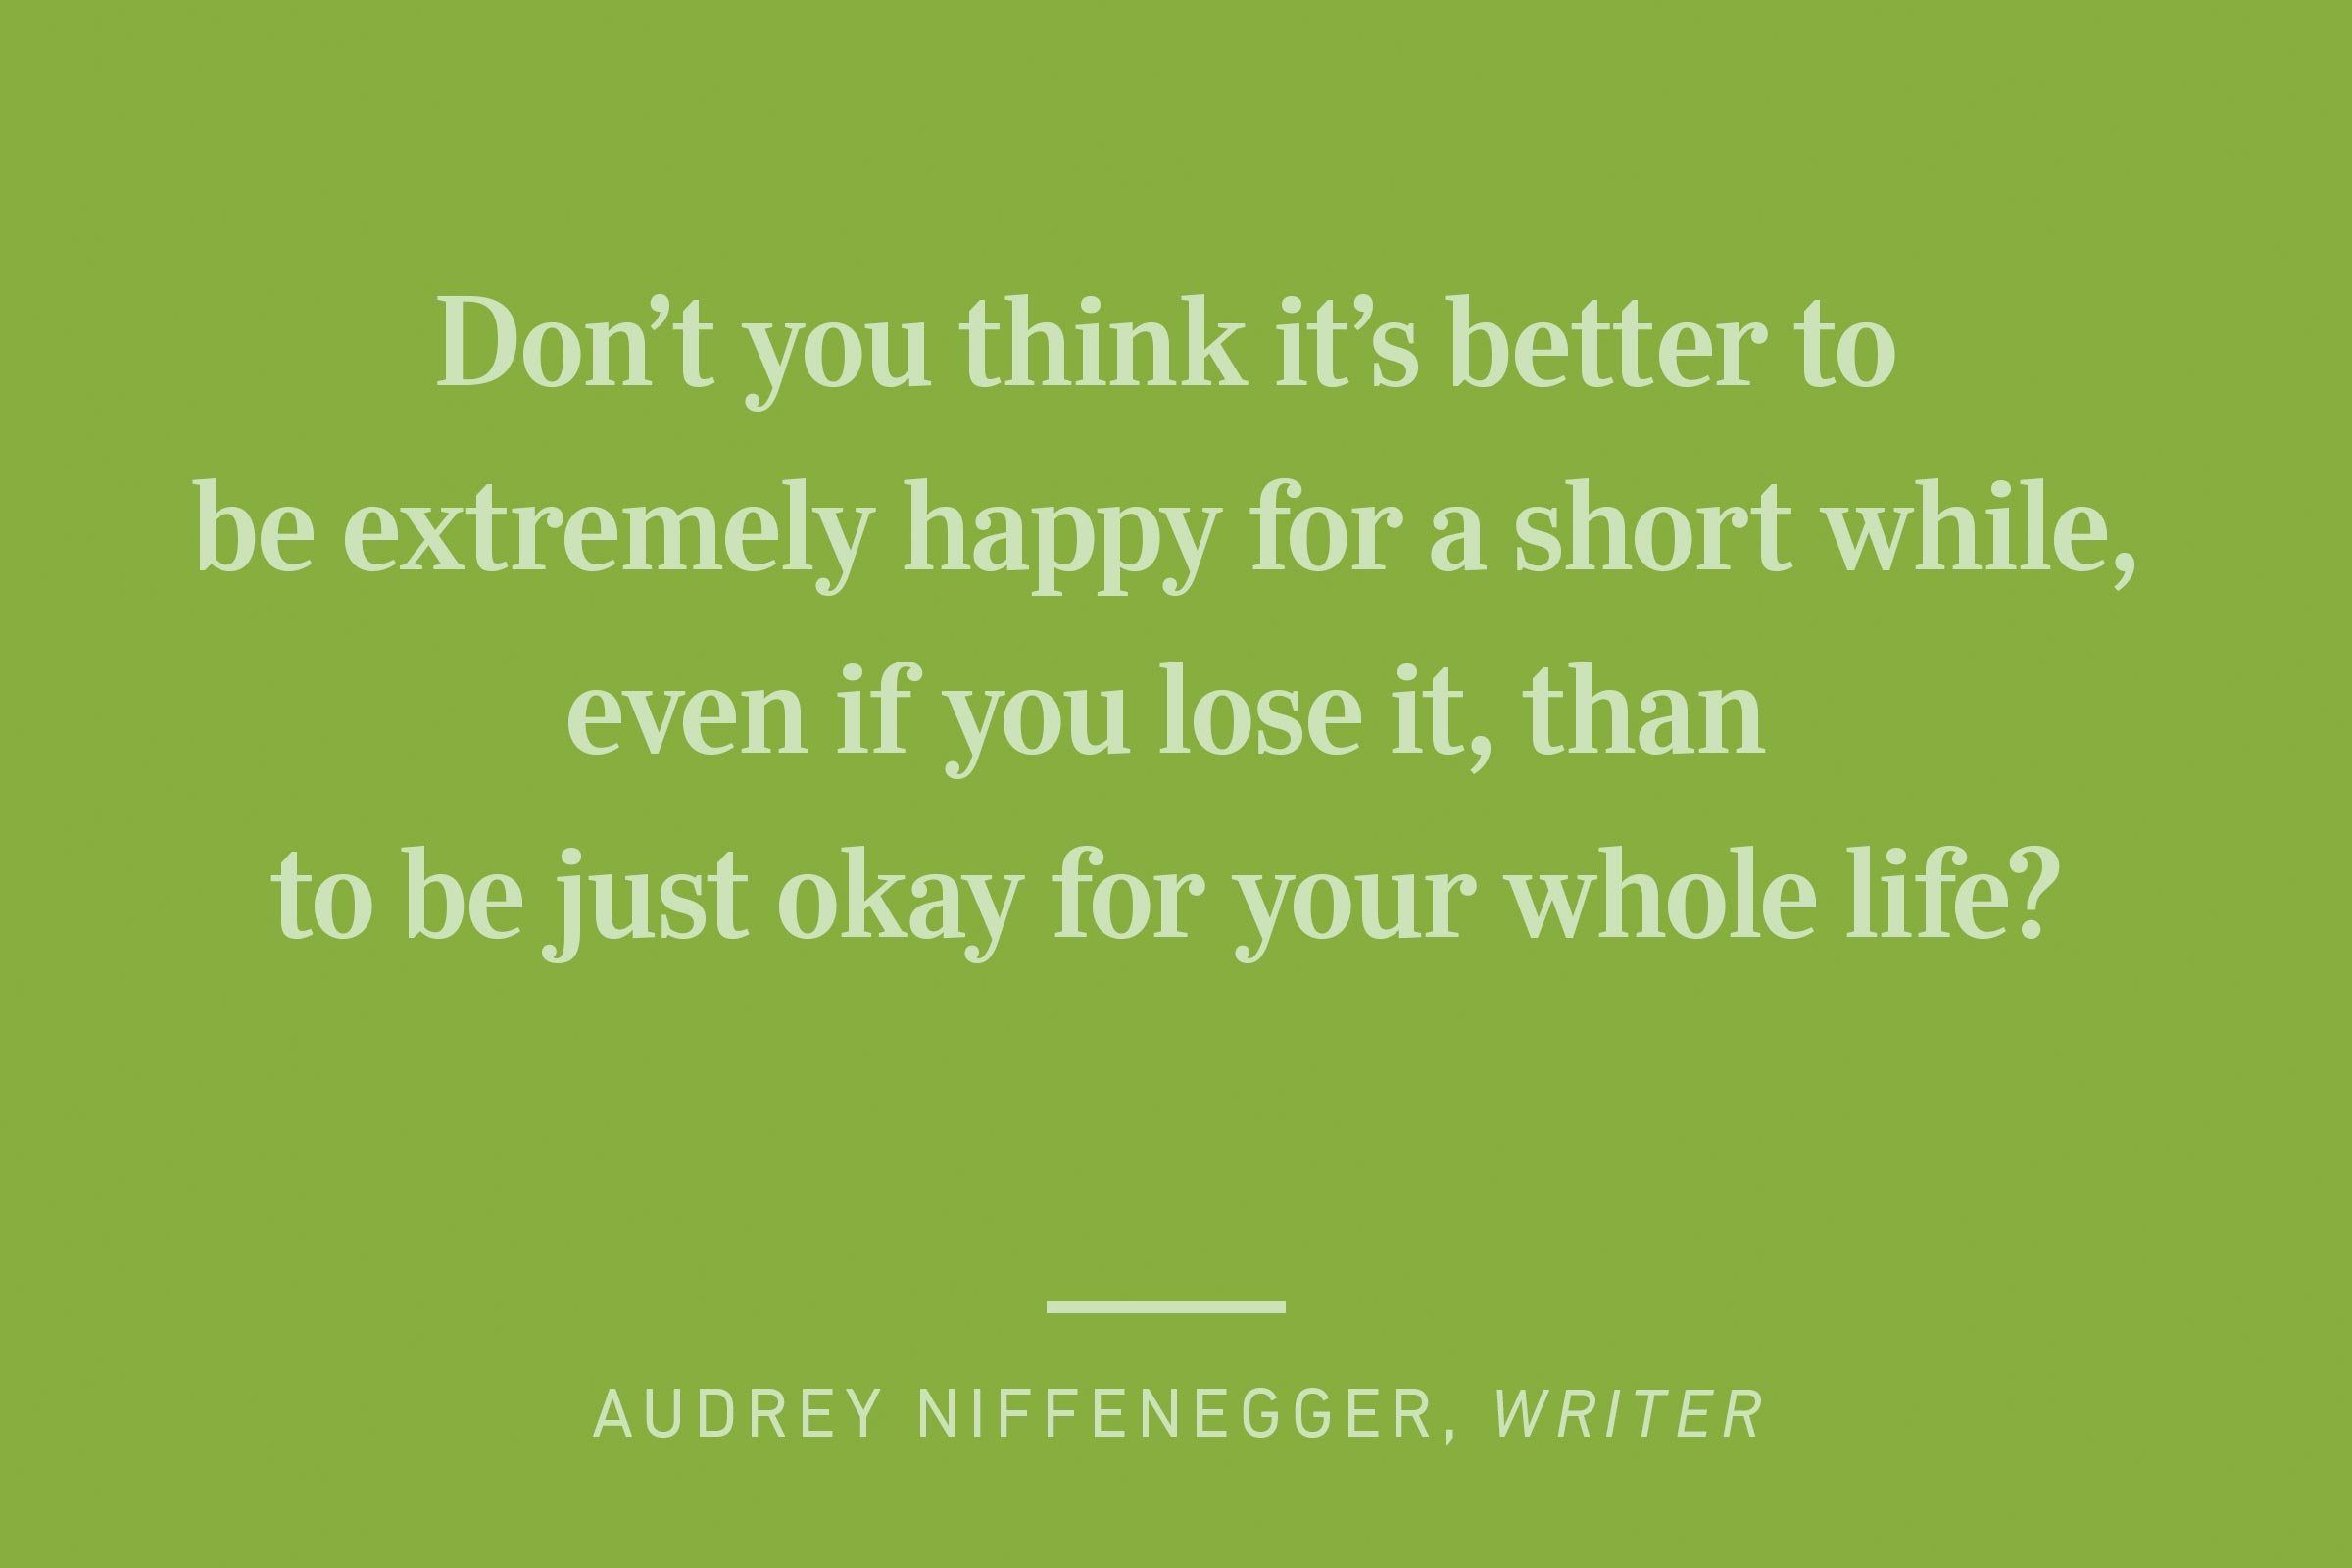 audrey niffenegger happiness quote